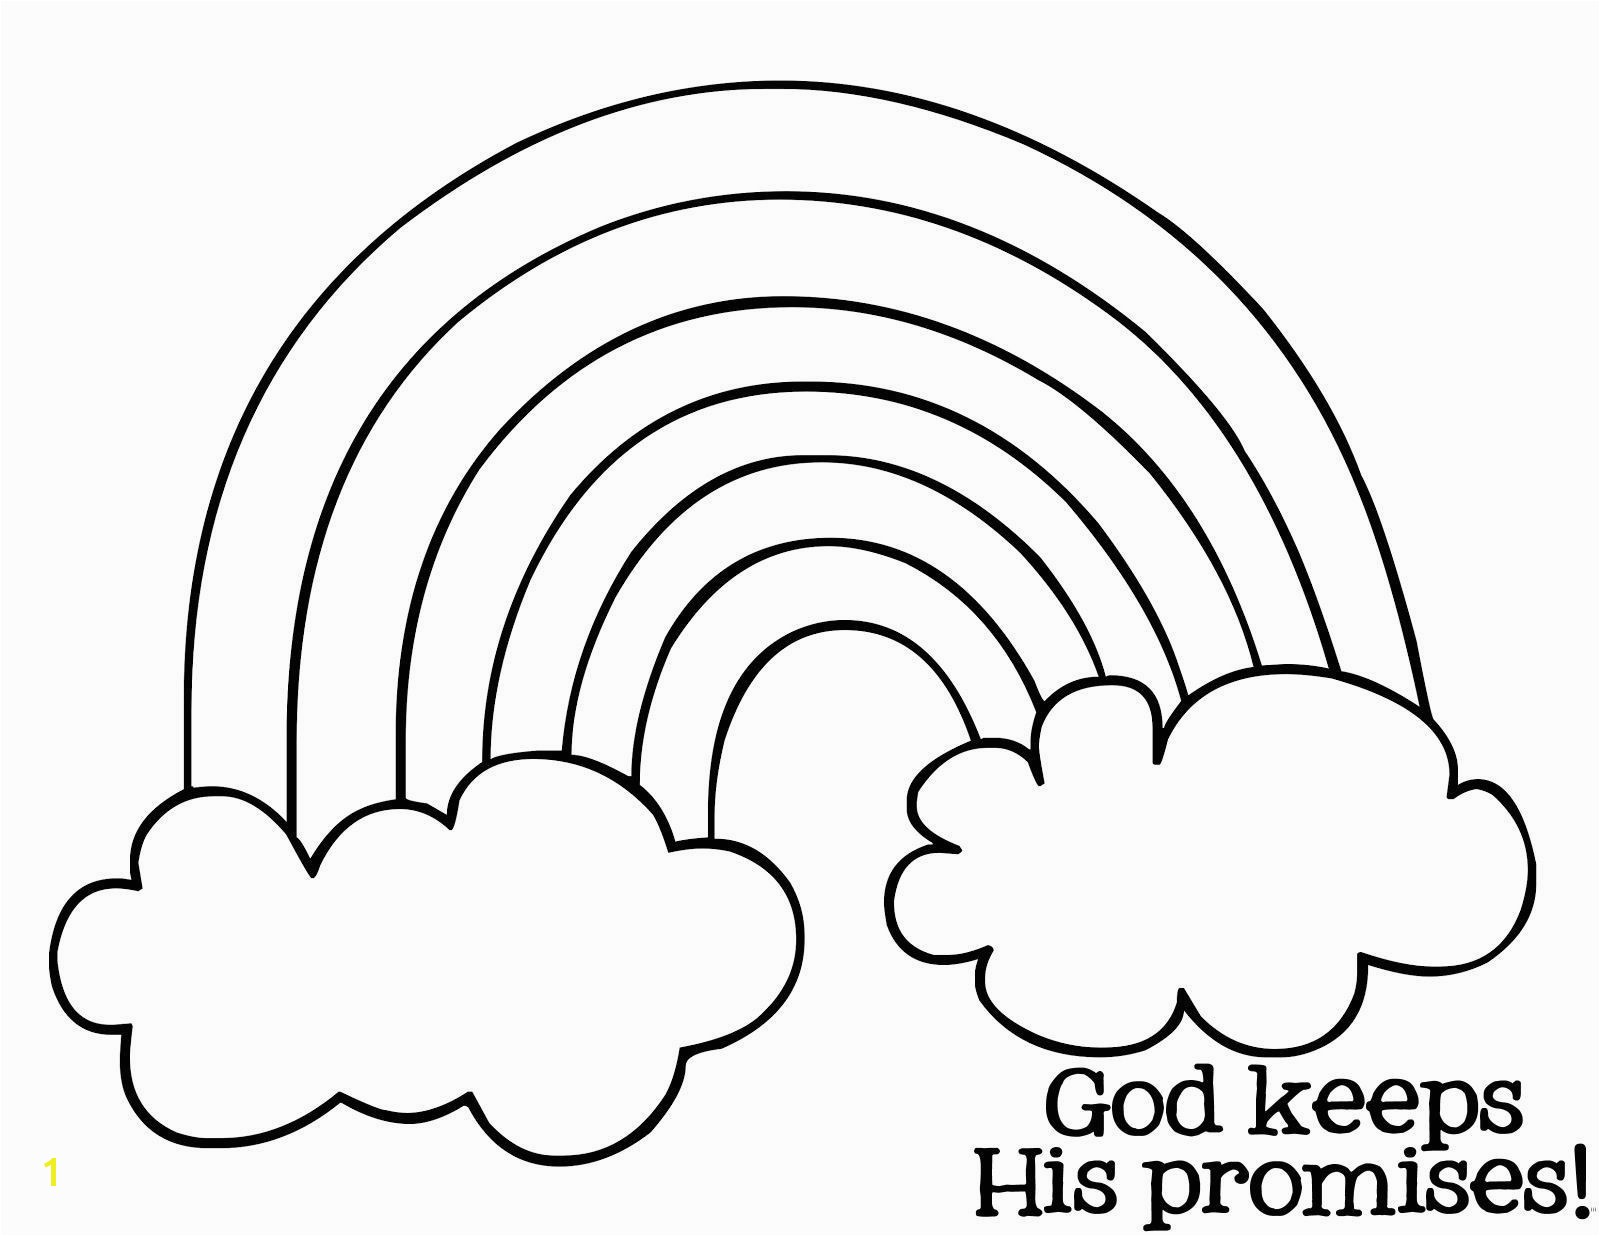 Rainbow and Clouds Coloring Page Inspirational Rainbow Coloring Page Pdf Free Download s